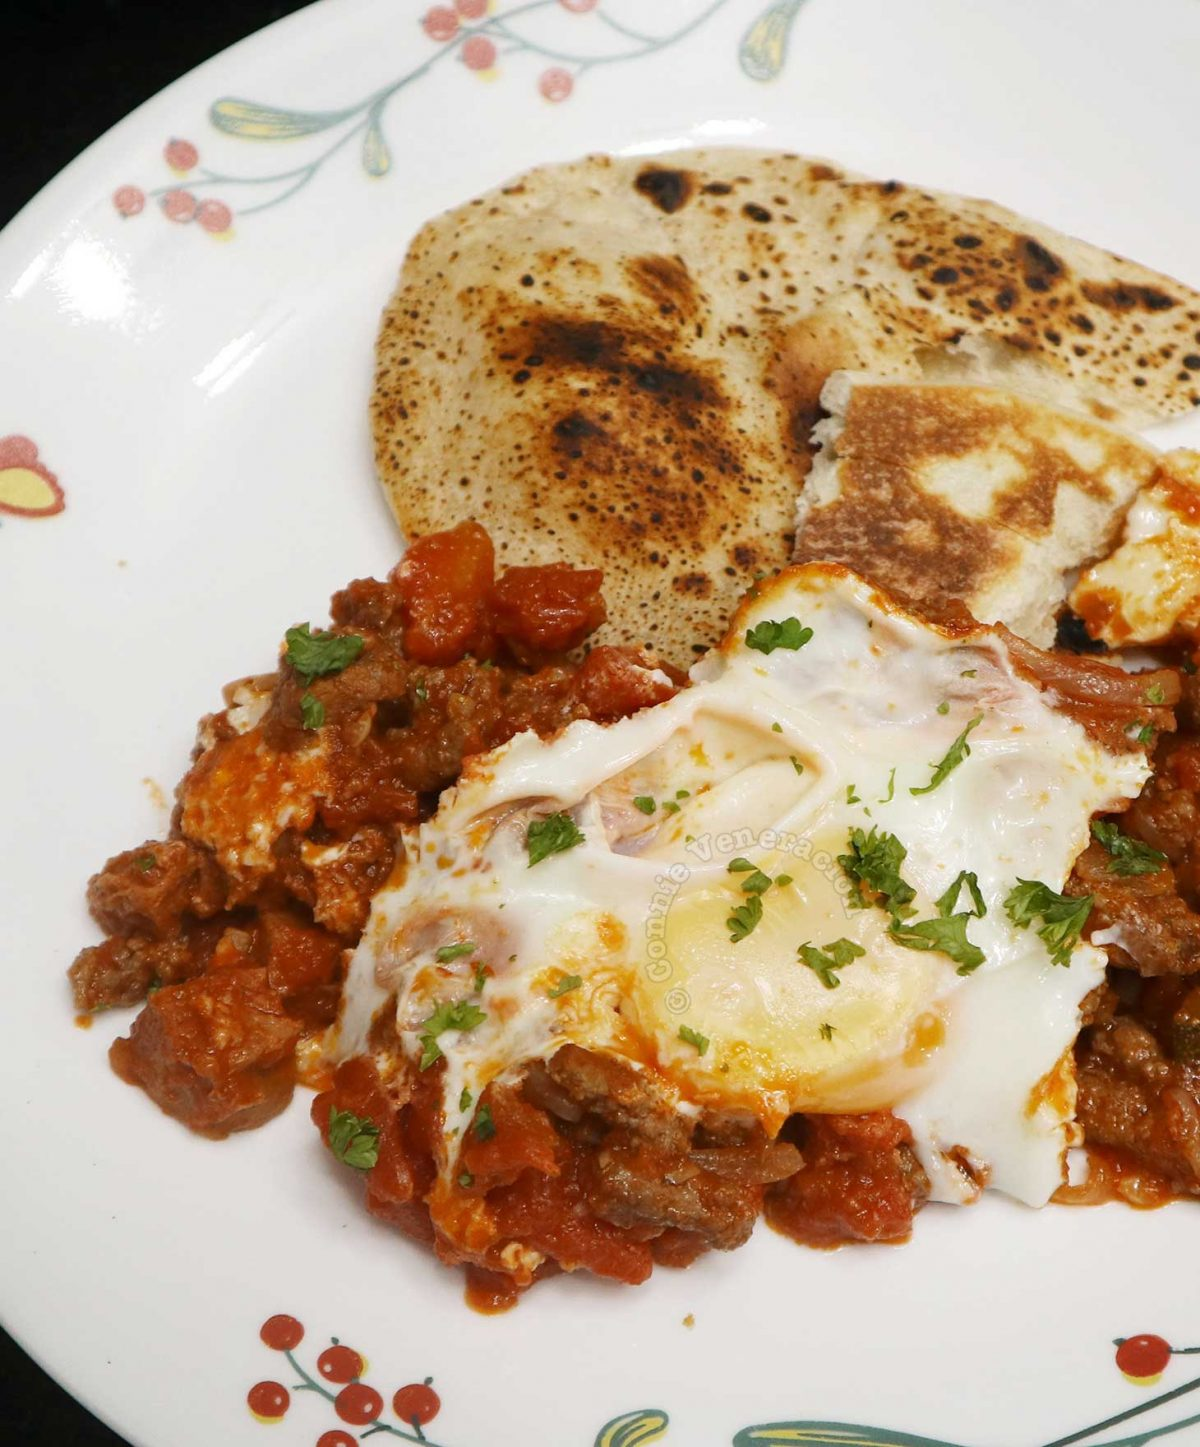 Shakshuka (Eggs in Tomato Stew) Served with Naan